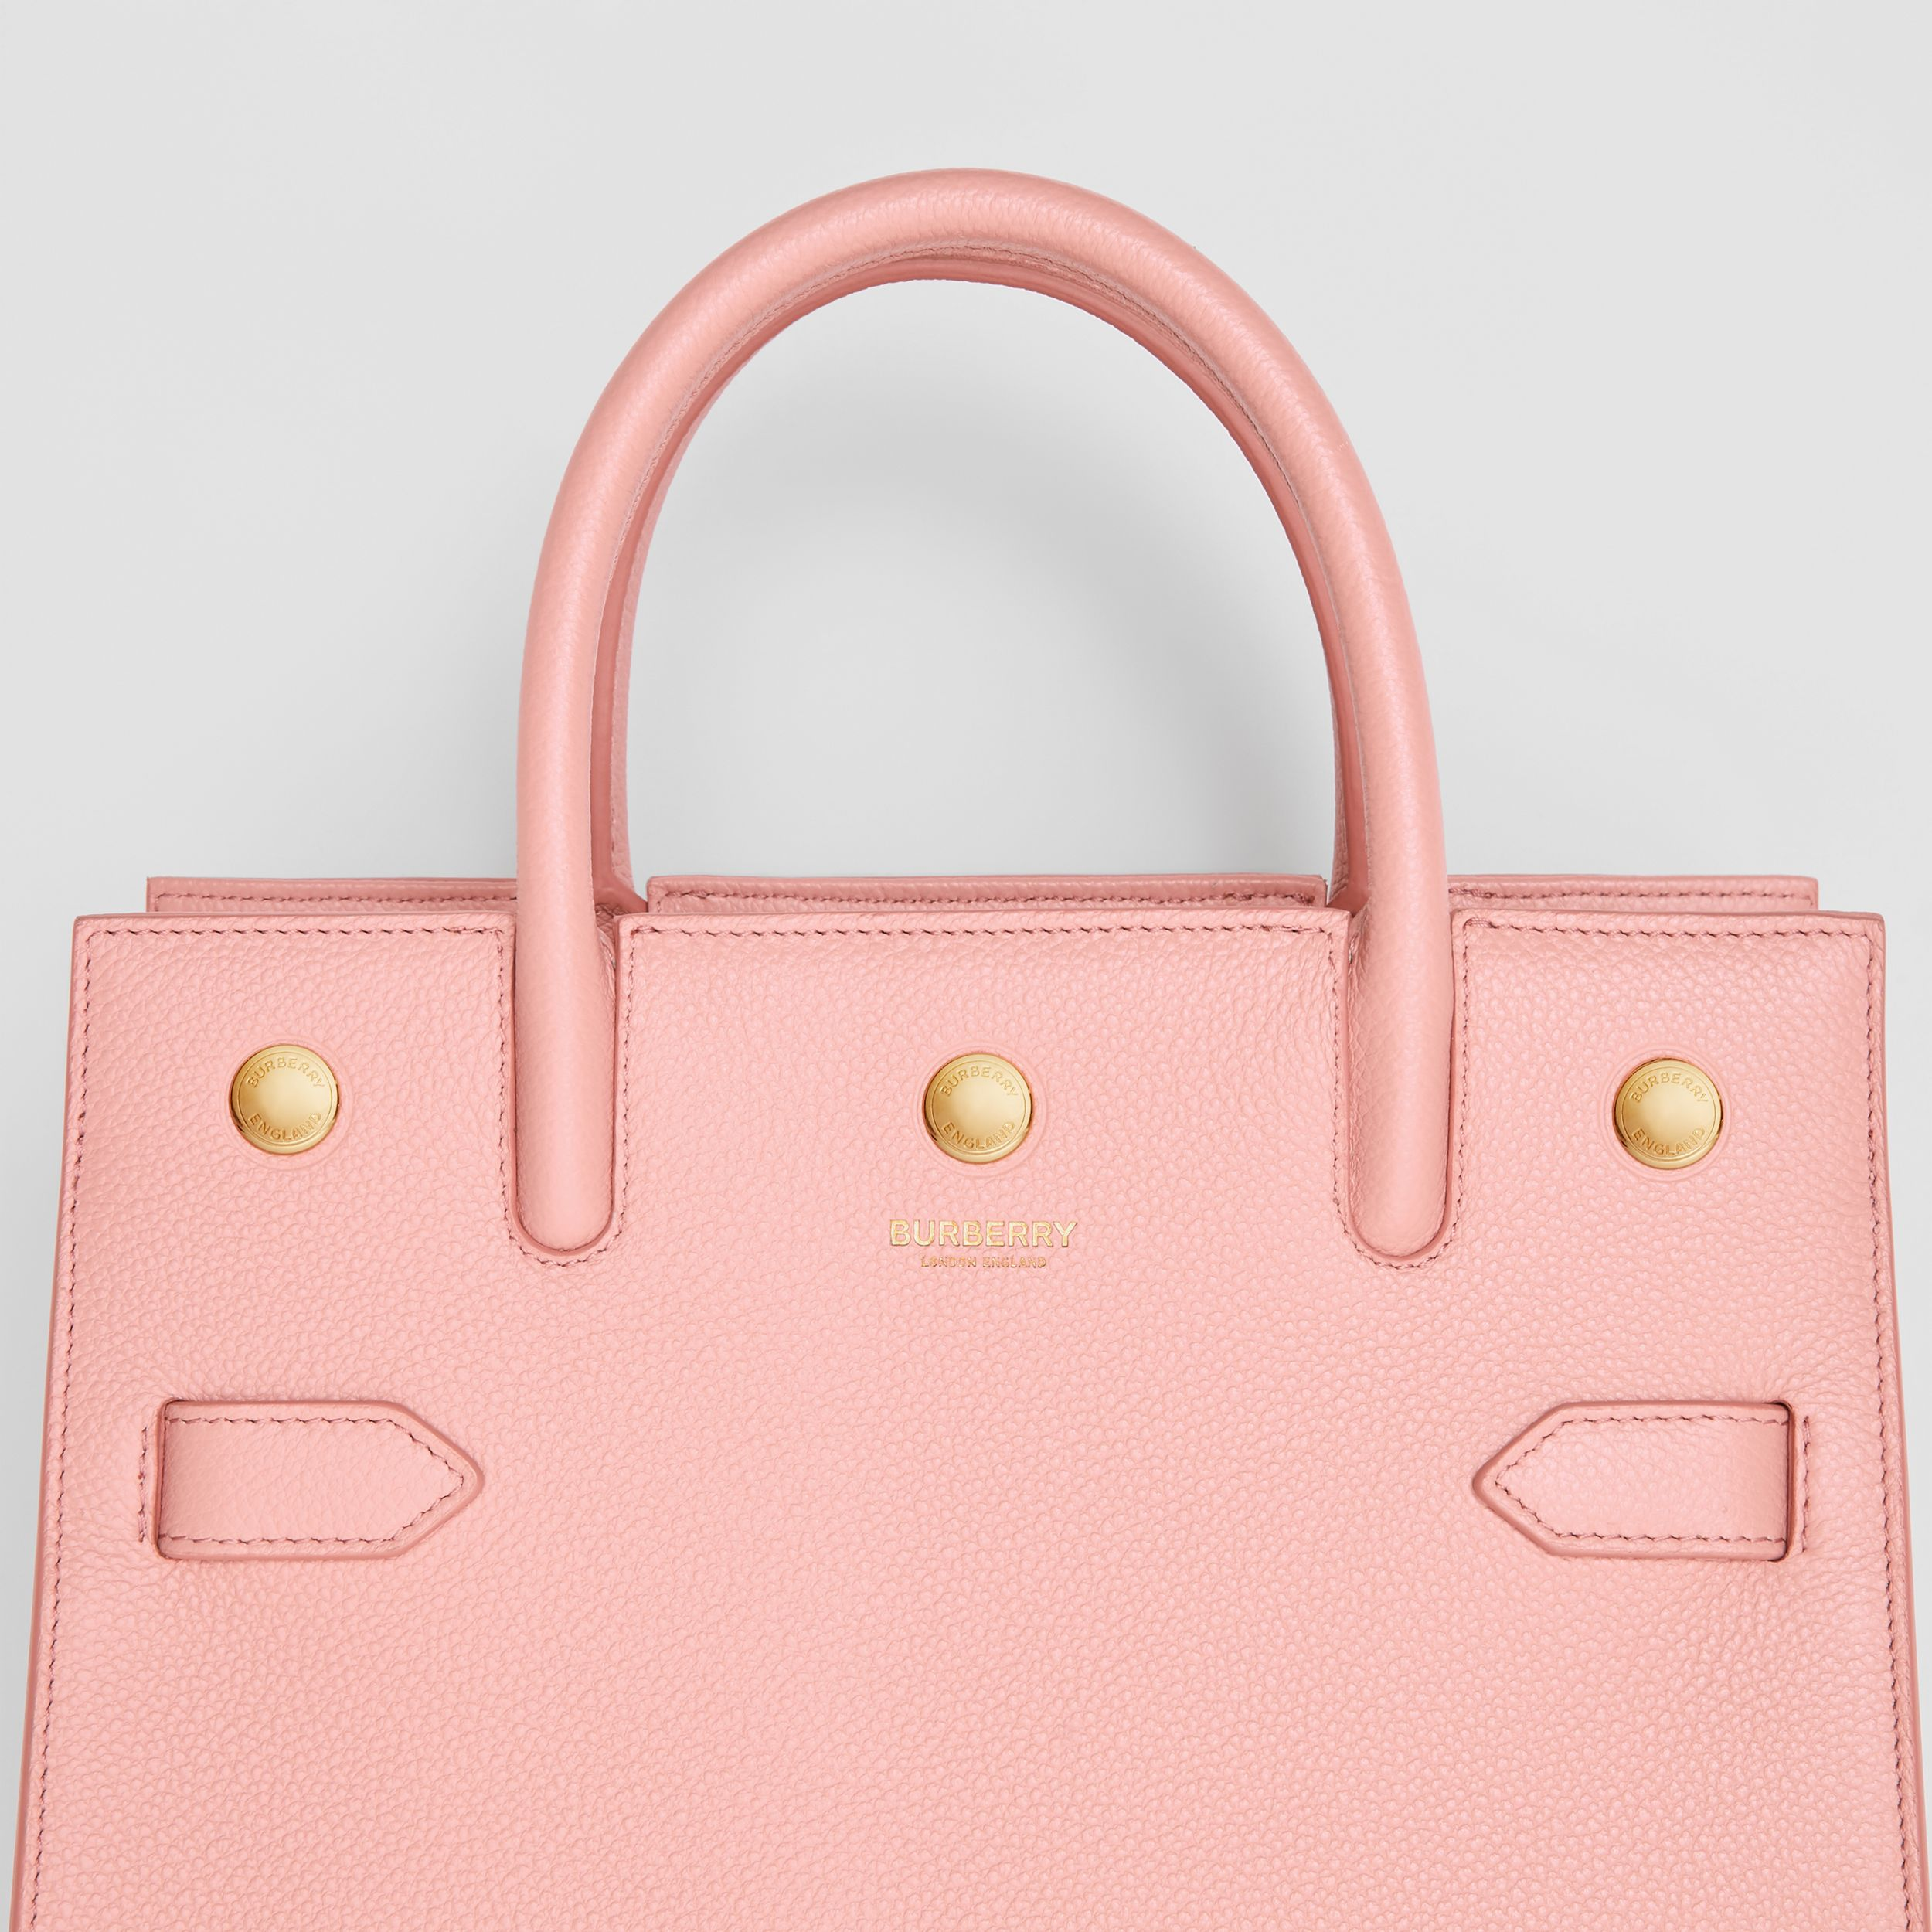 Mini Leather Two-handle Title Bag in Blush Pink - Women | Burberry - 2